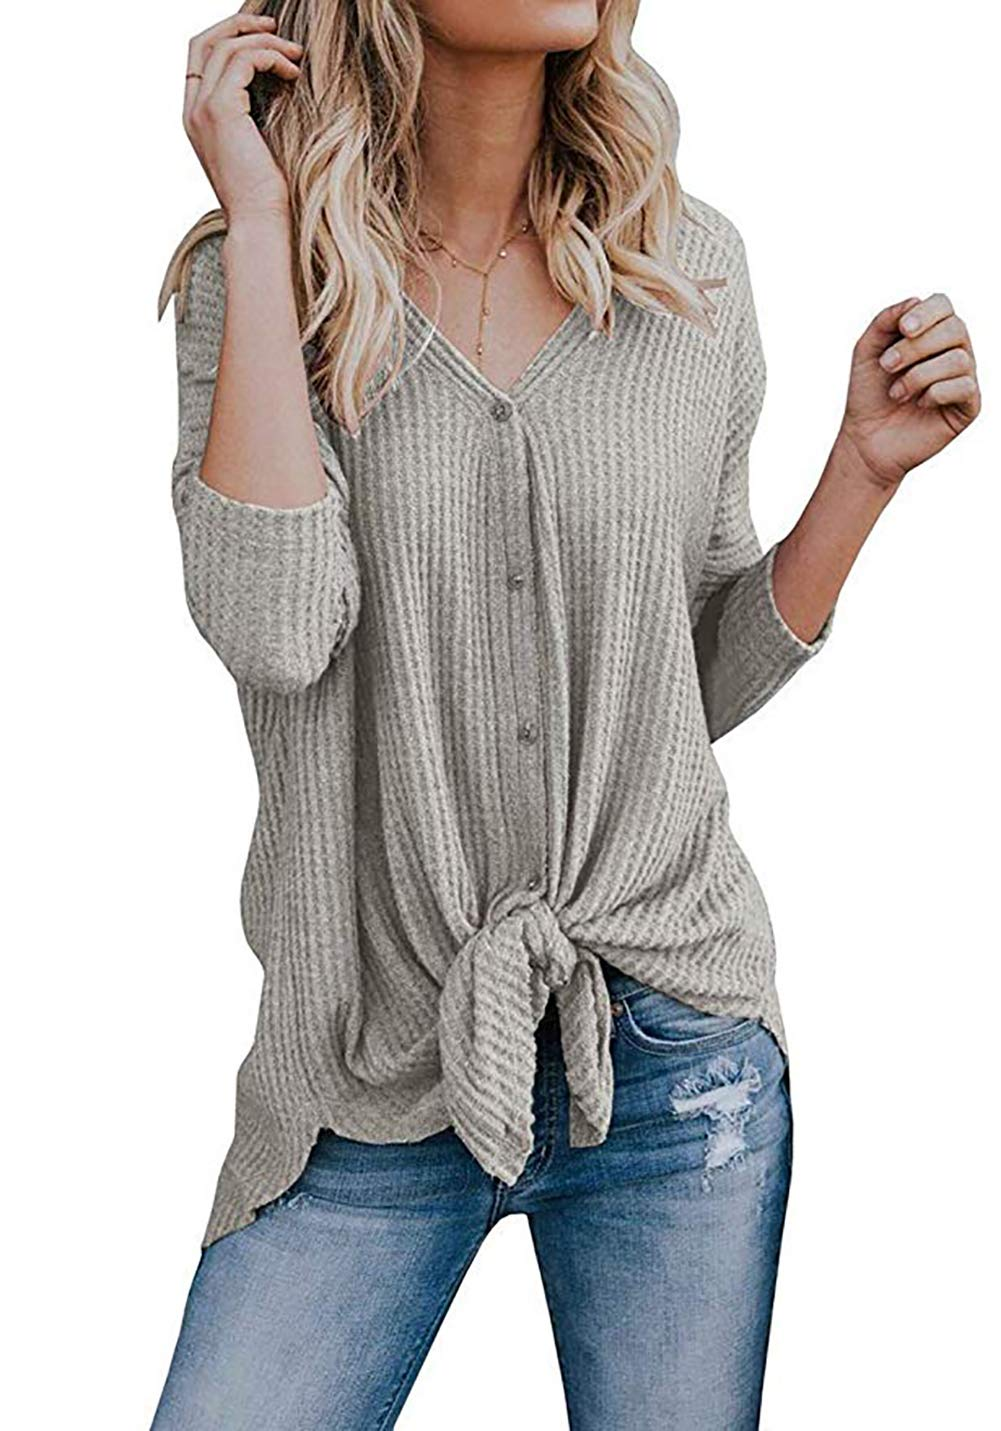 Chvity Womens Waffle Knit Tunic Blouse Tie Knot Henley Tops Loose Fitting Bat Wing Plain Shirts (L, Oatmeal Grey)